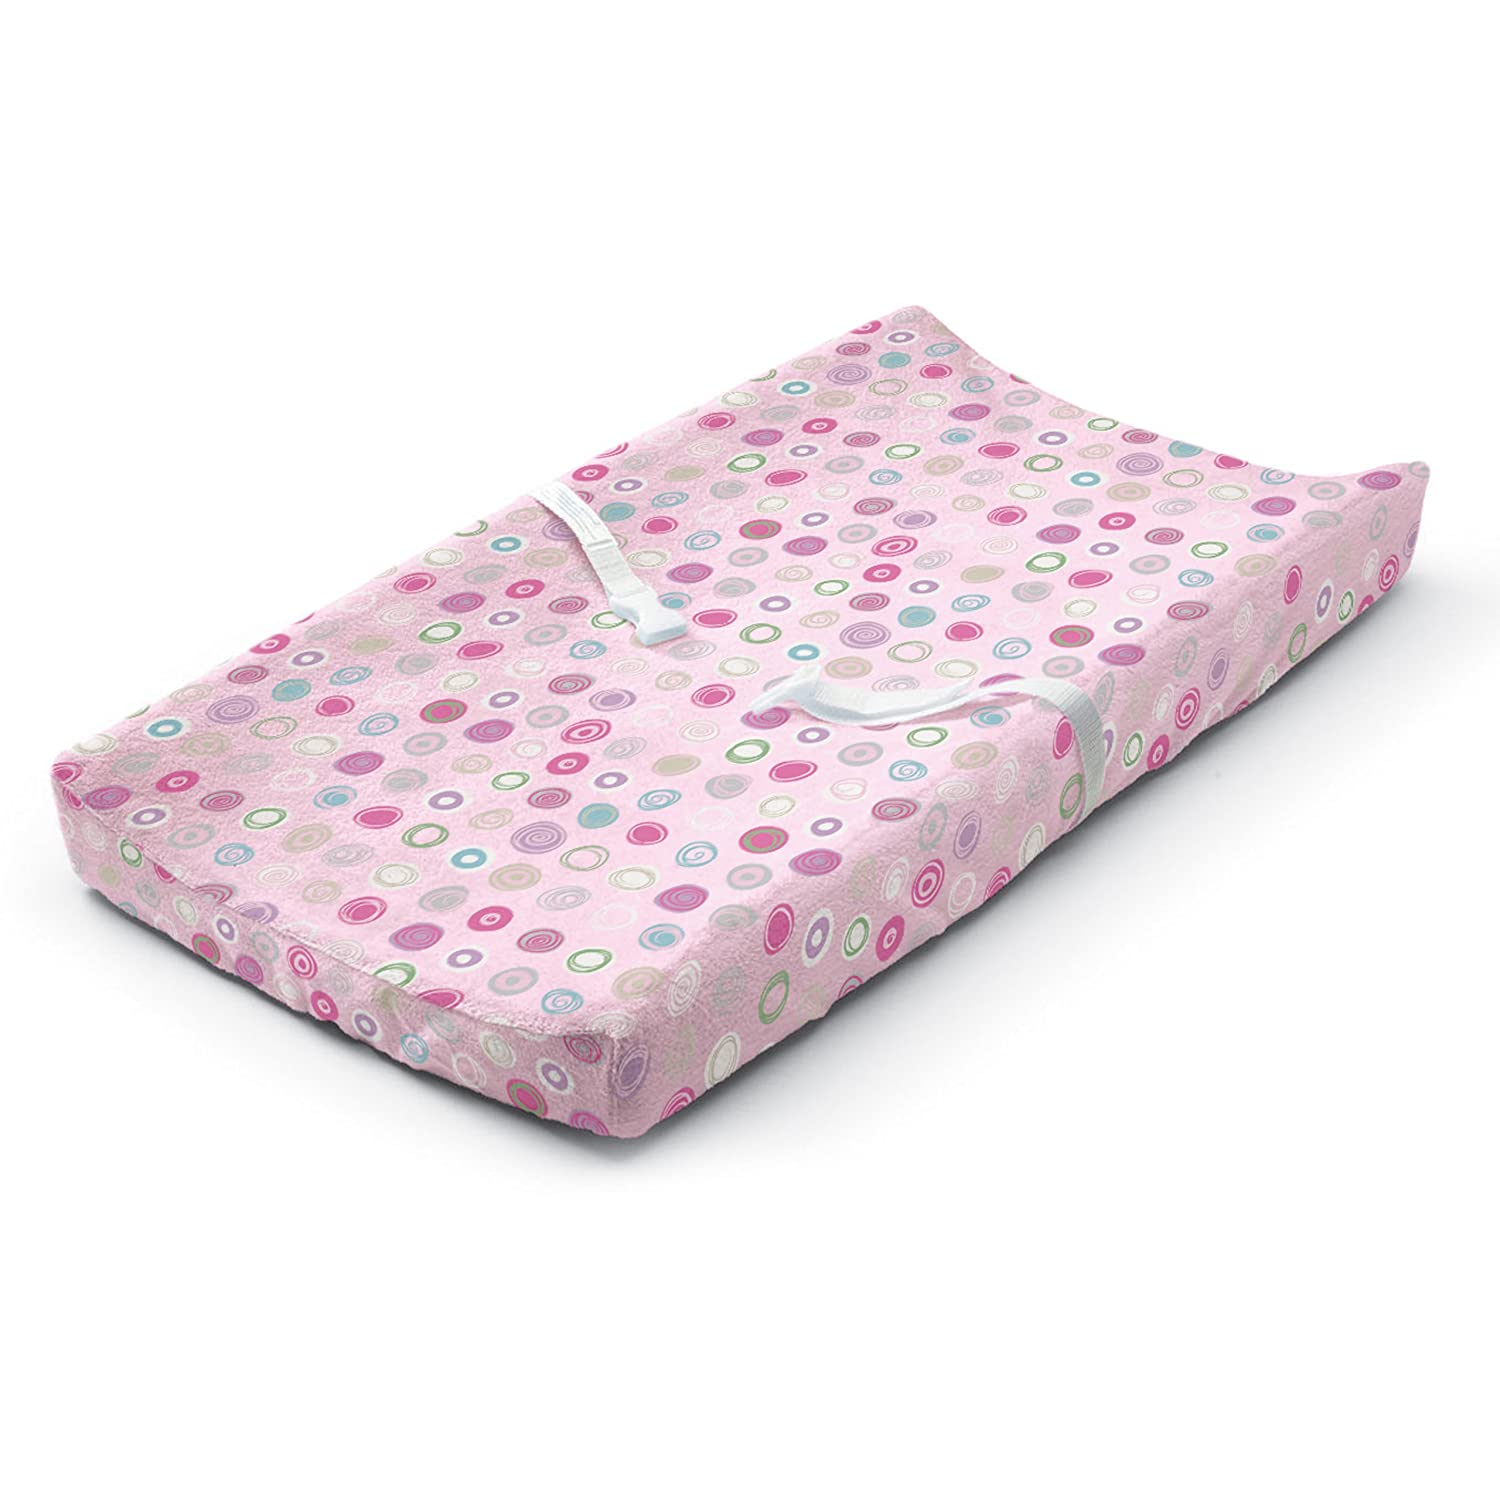 Summer Infant Ultra Plush Changing Pad Cover Pink Swirl Inc. 92690